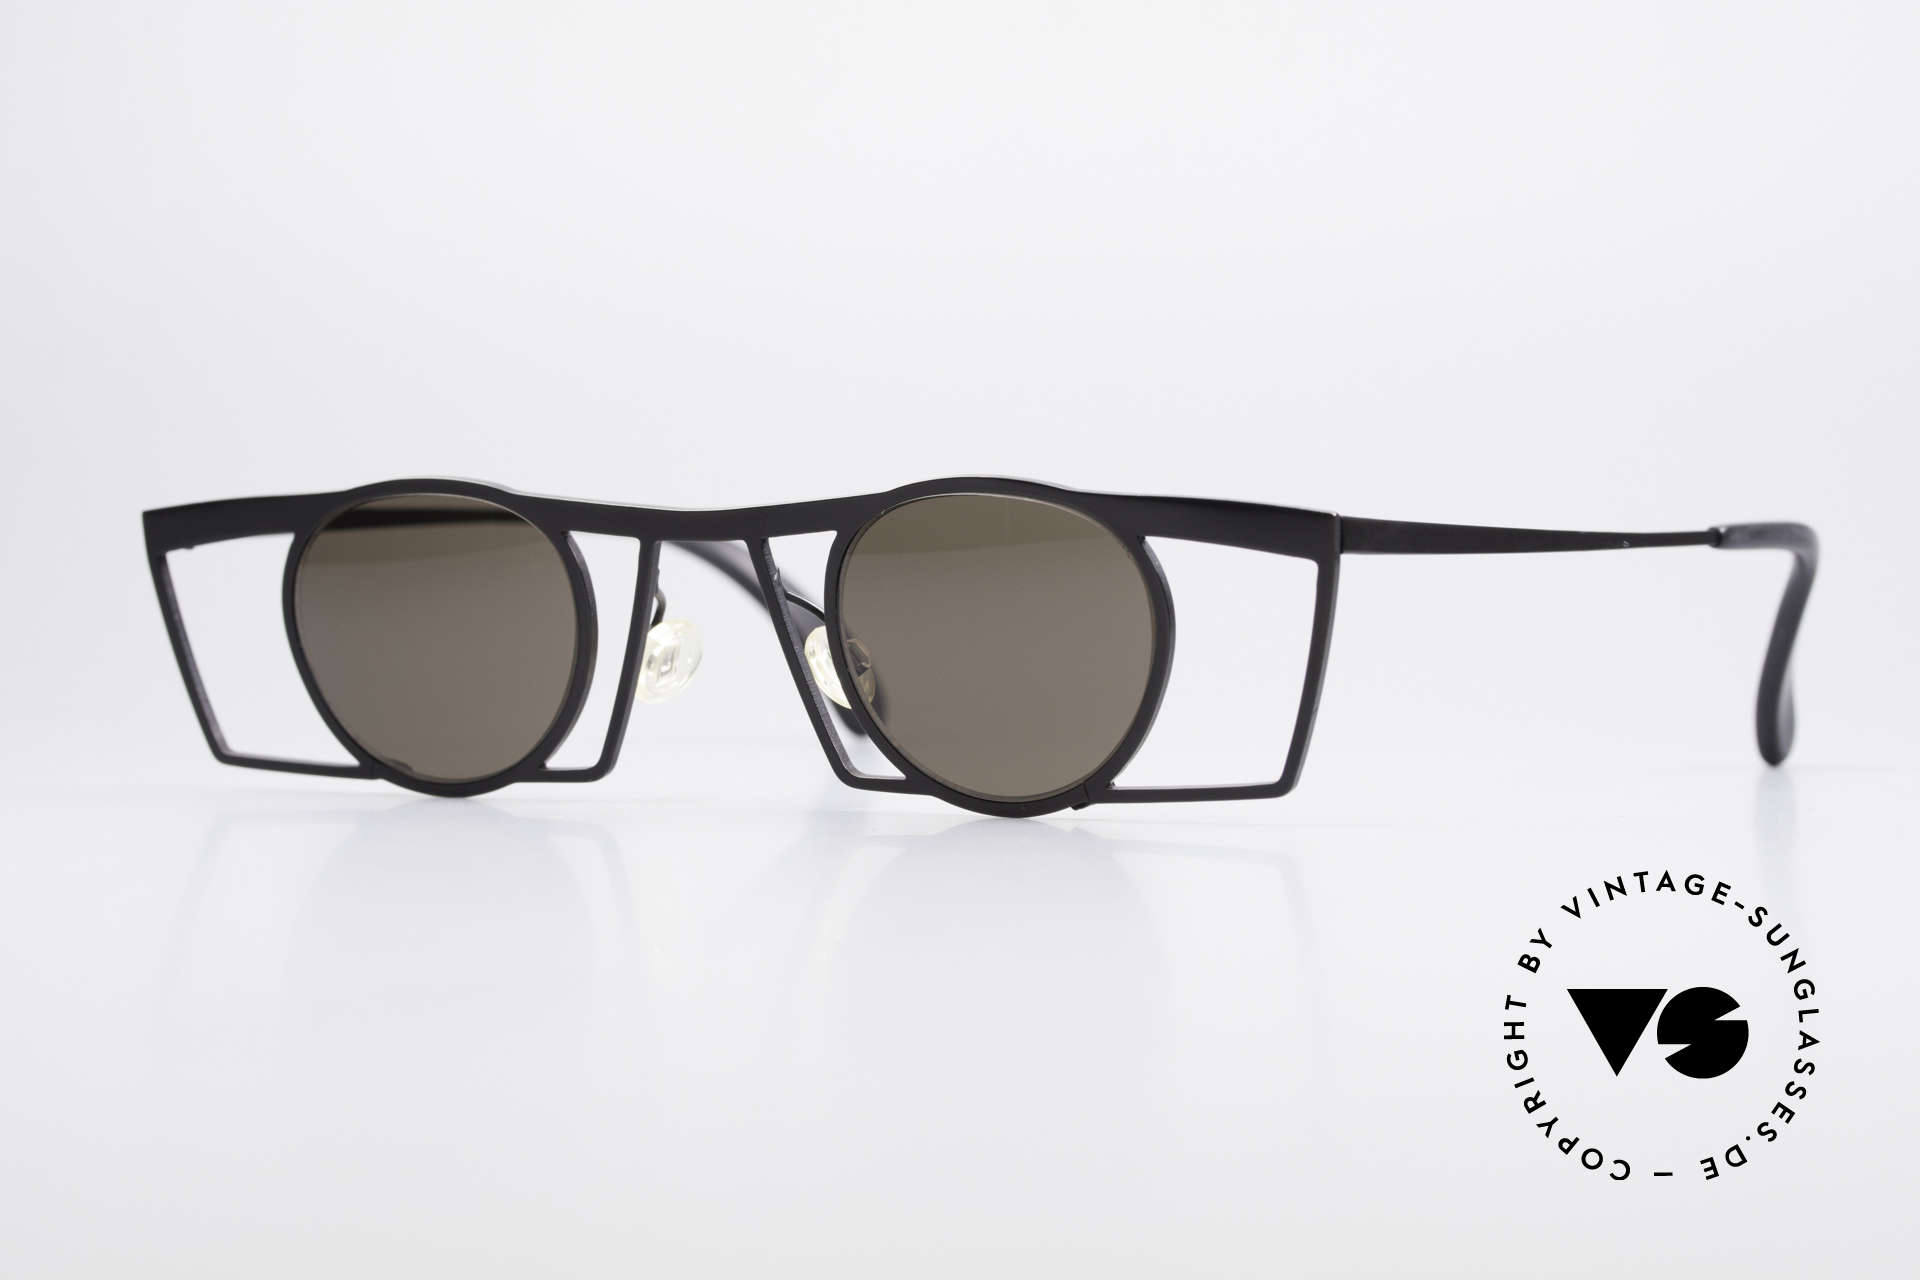 Theo Belgium Jupiter Square Designer Sunglasses, Theo Belgium: the most self-willed brand in the world, Made for Men and Women